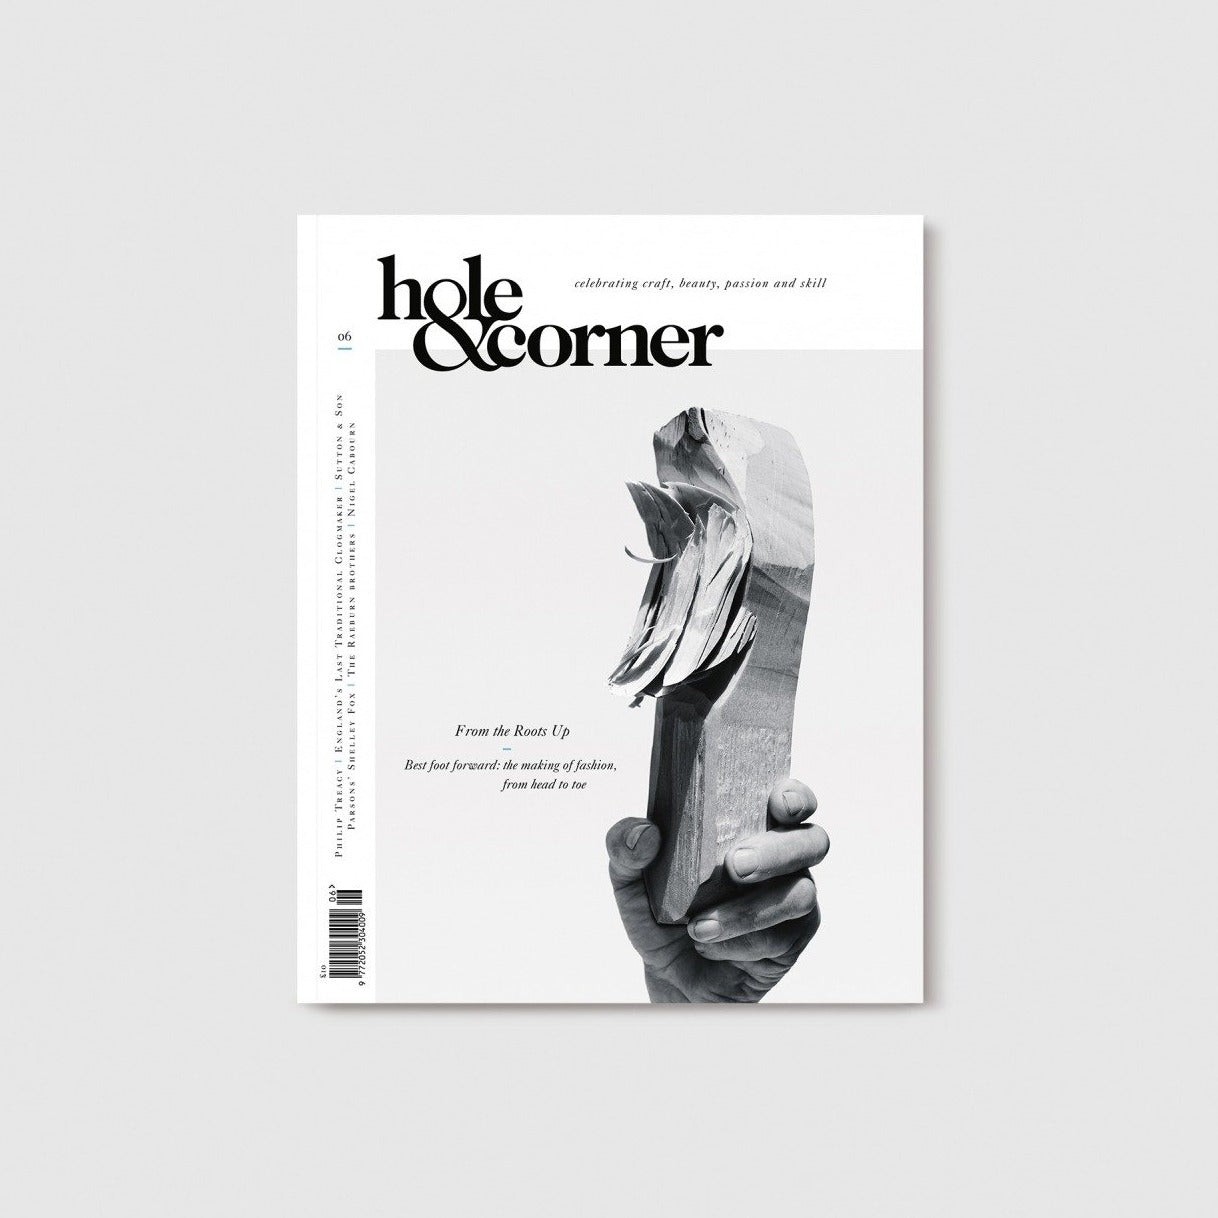 Issue 06: Fashion